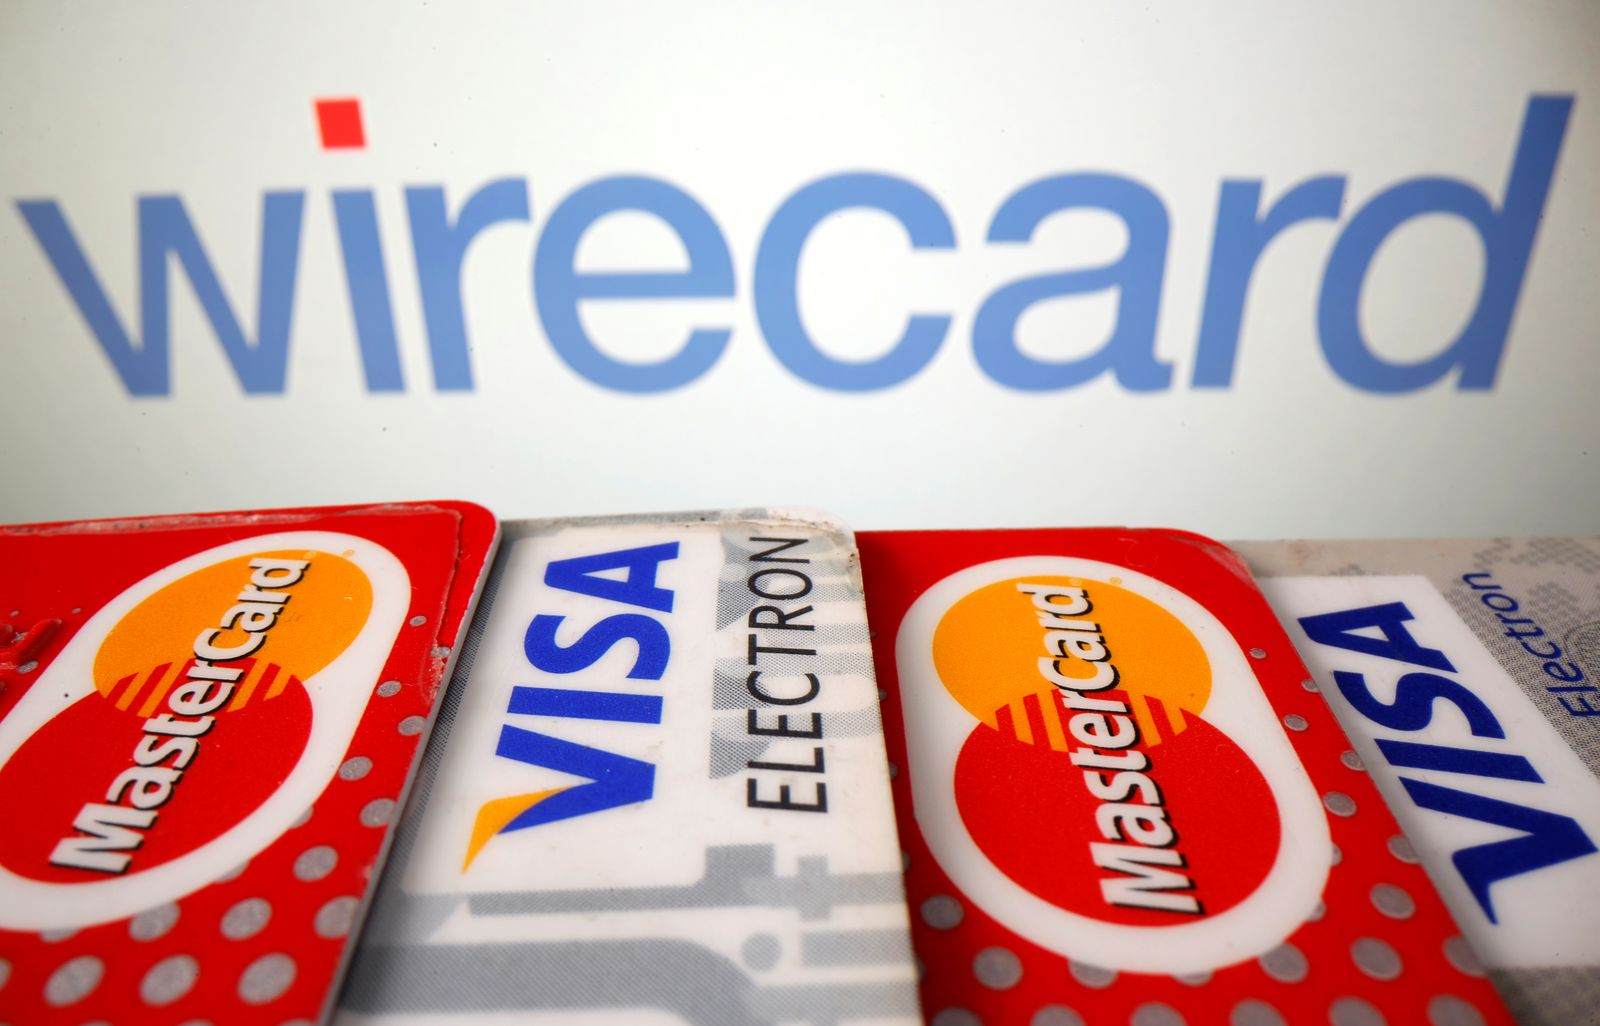 Mastercard and Visa credit cards are seen in front of displayed Wirecard logo in this illustration picture